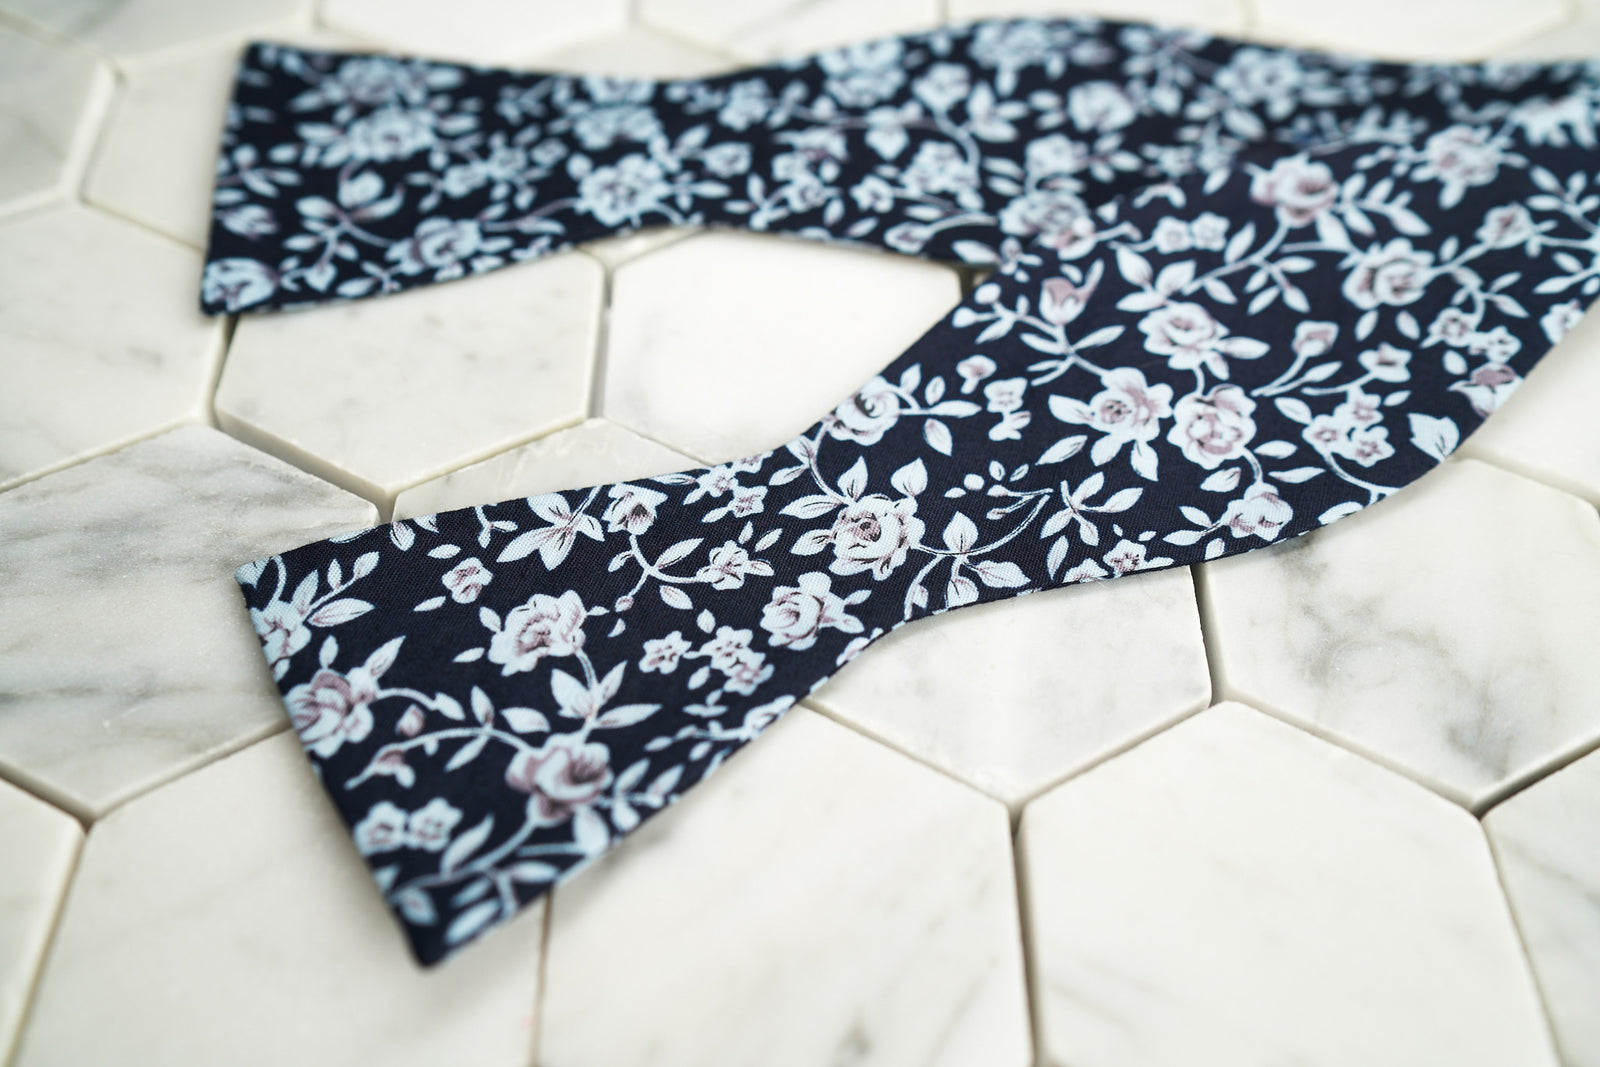 An image of the Dear Martian exclusive Liberty navy floral patterned bow tie; shown across a hexagon background.